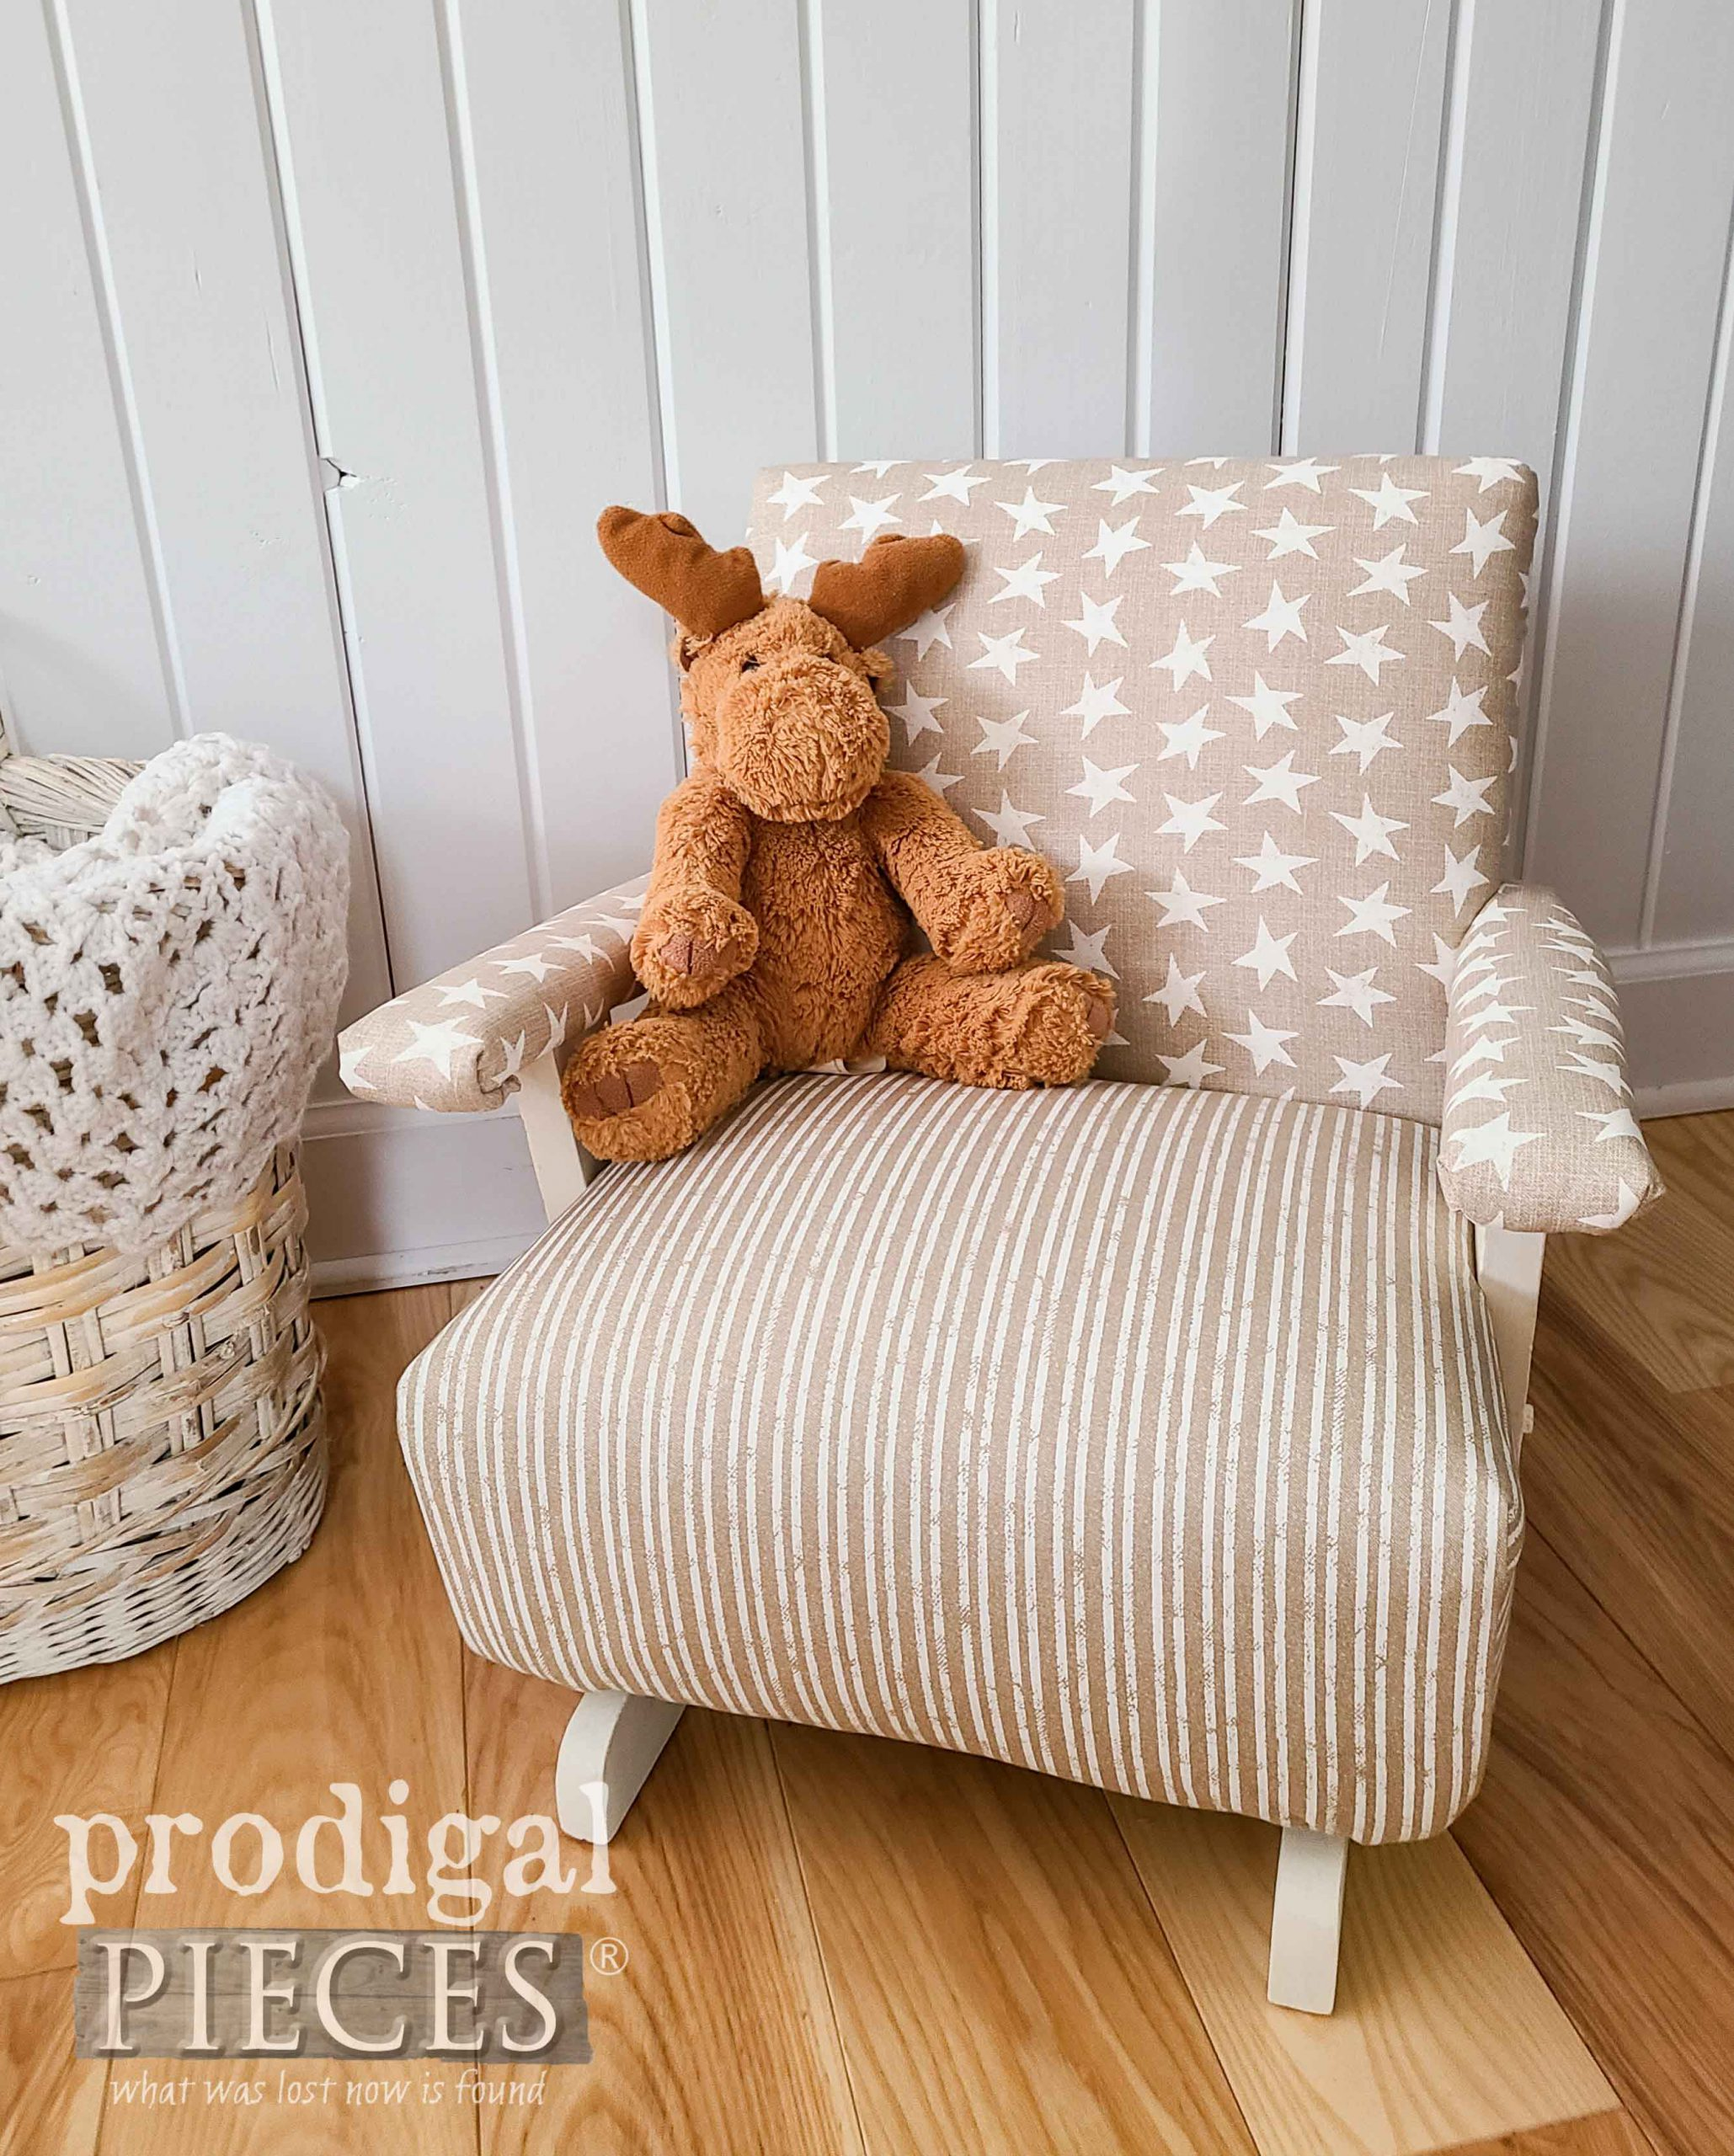 Stars & Stripes Child's Upholstered Rocking Chair by Larissa of Prodigal Pieces | prodigalpieces.com #prodigalpieces #diy #furniture #home #homedecor #vintage